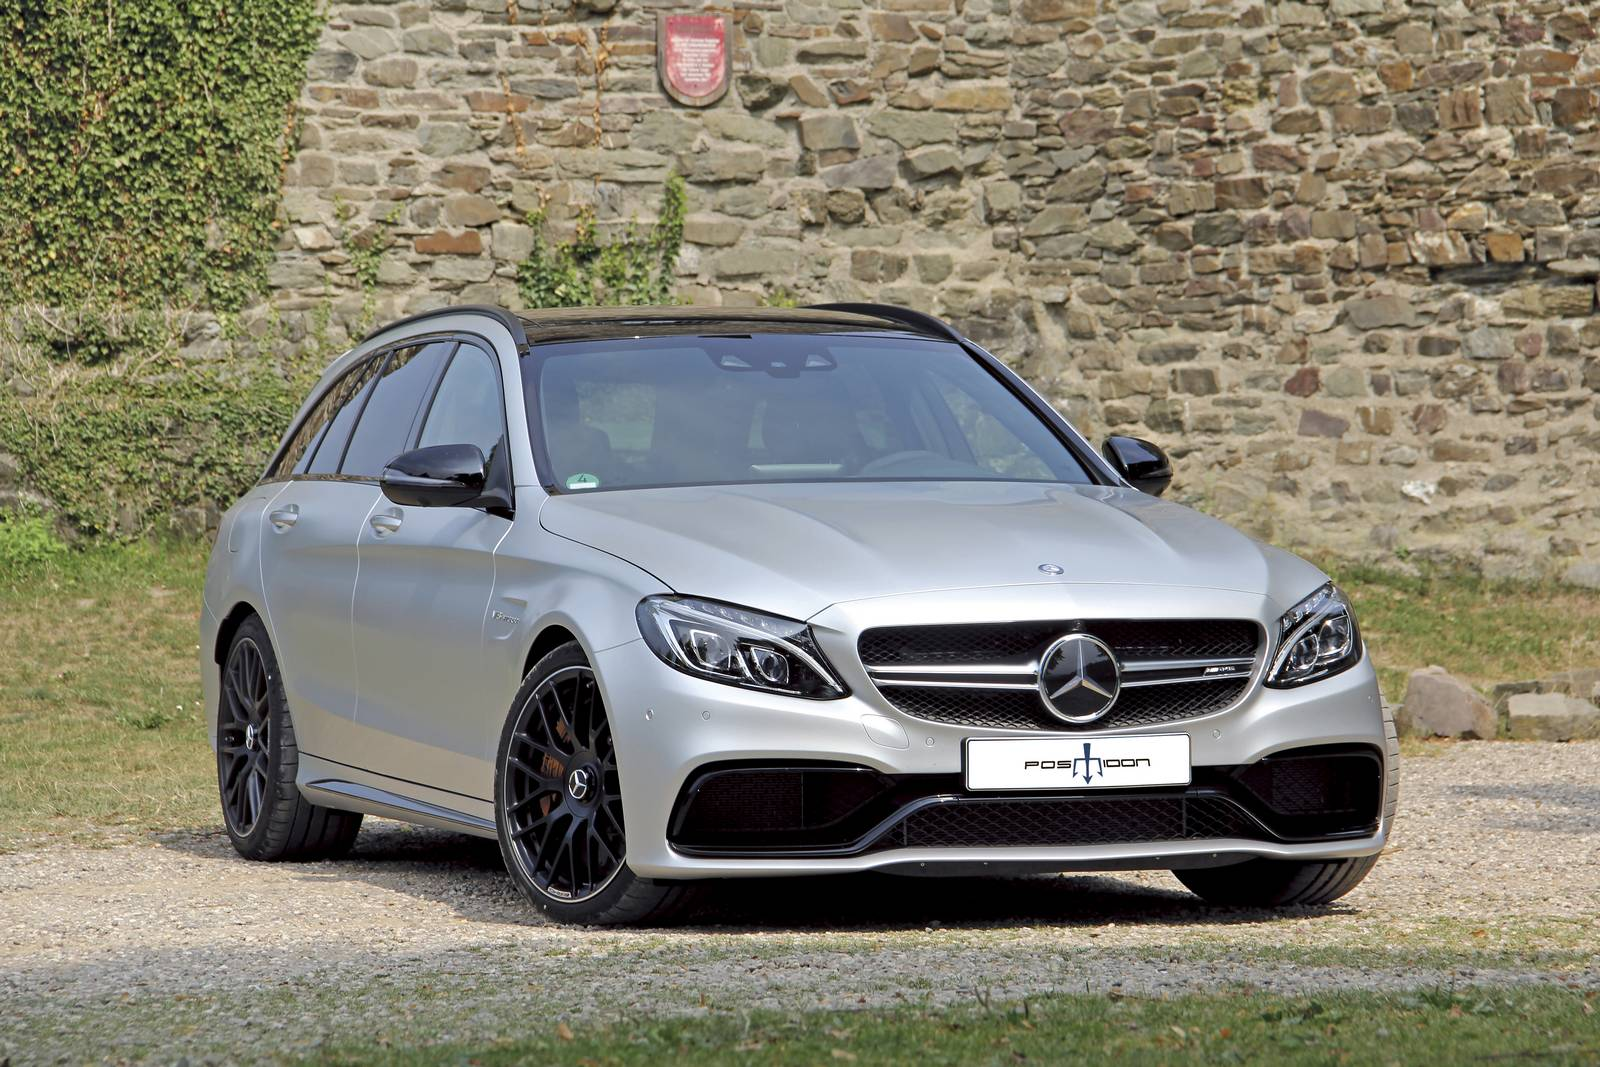 Official 700hp mercedes amg c63 wagon by posaidon gtspirit for Mercedes benz c63 amg wagon